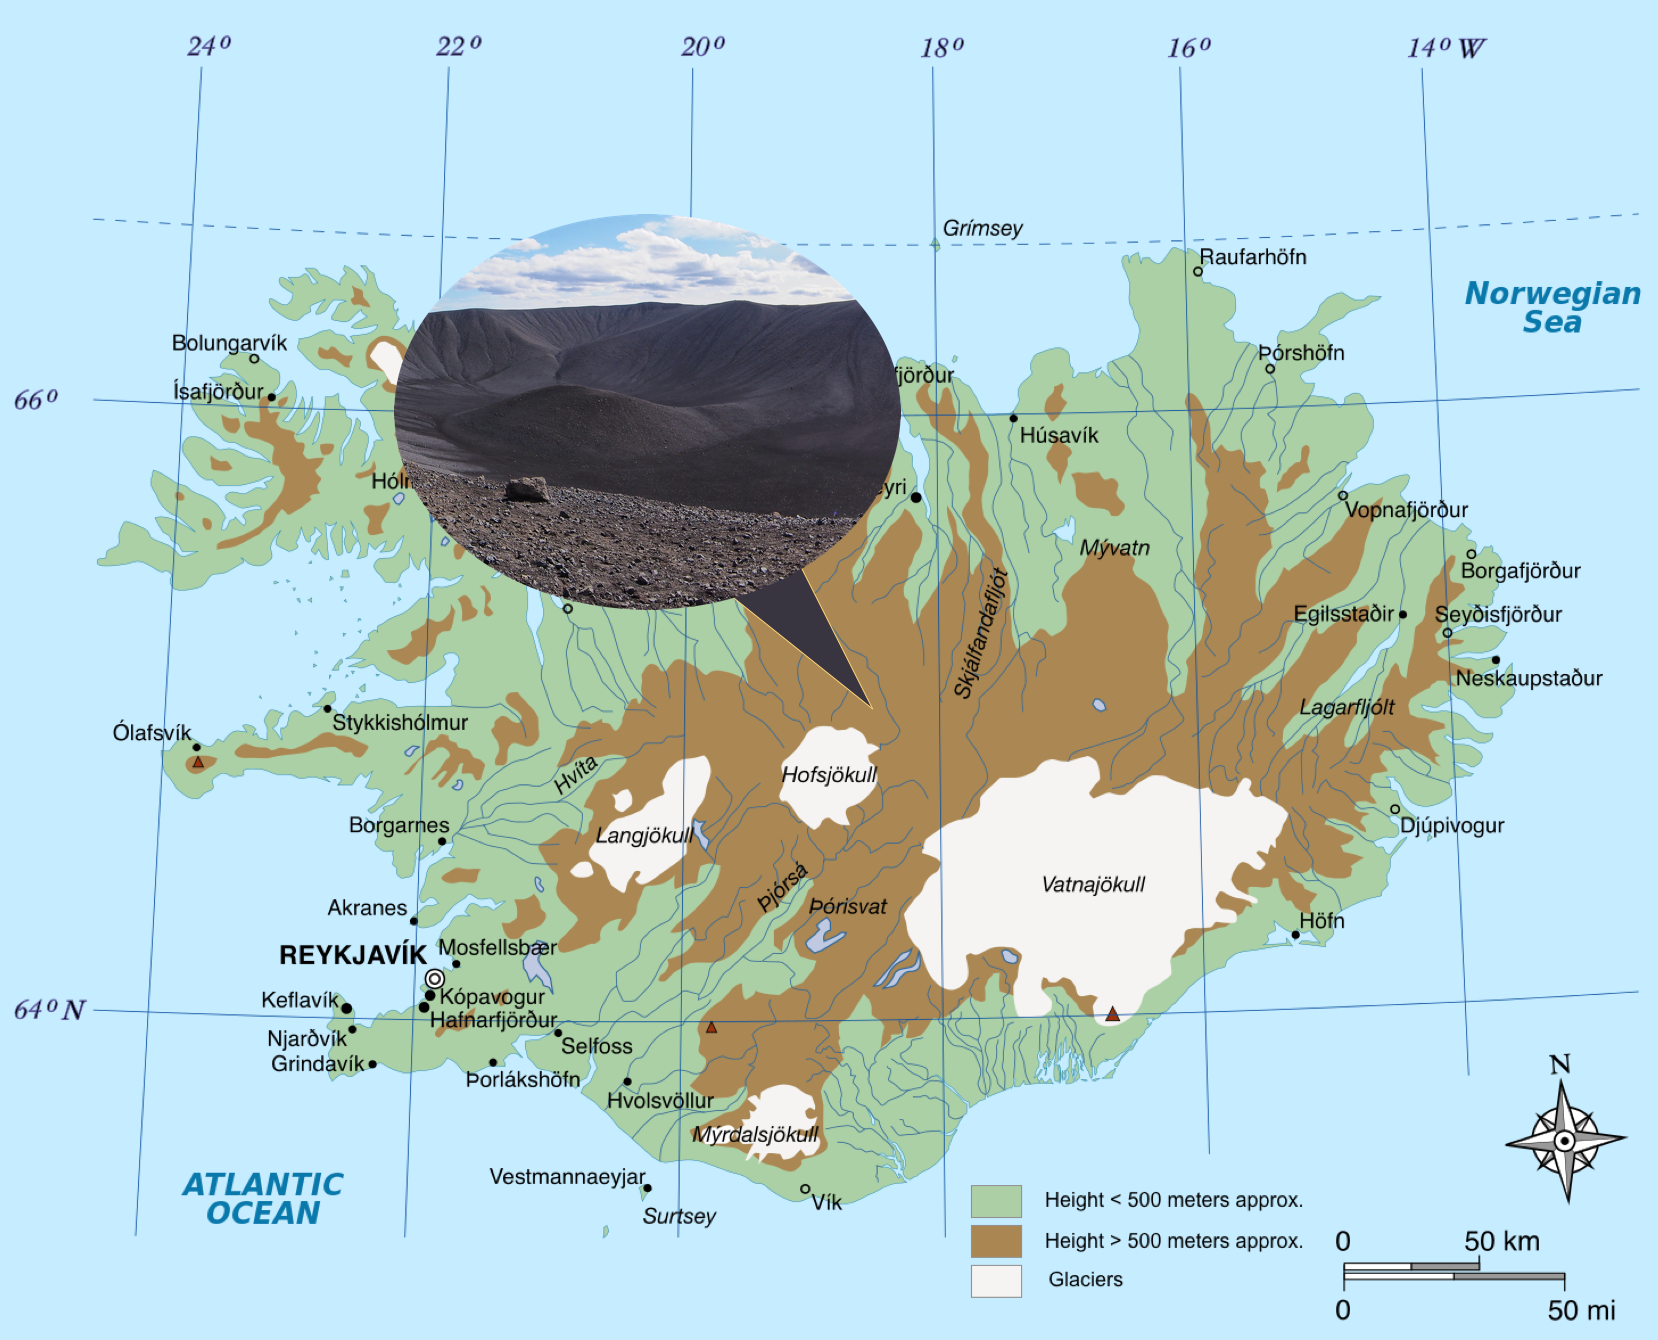 Figure 2. Map of the highlands of Iceland highlighting tephra, a dark, volcanic soil, present in these regions